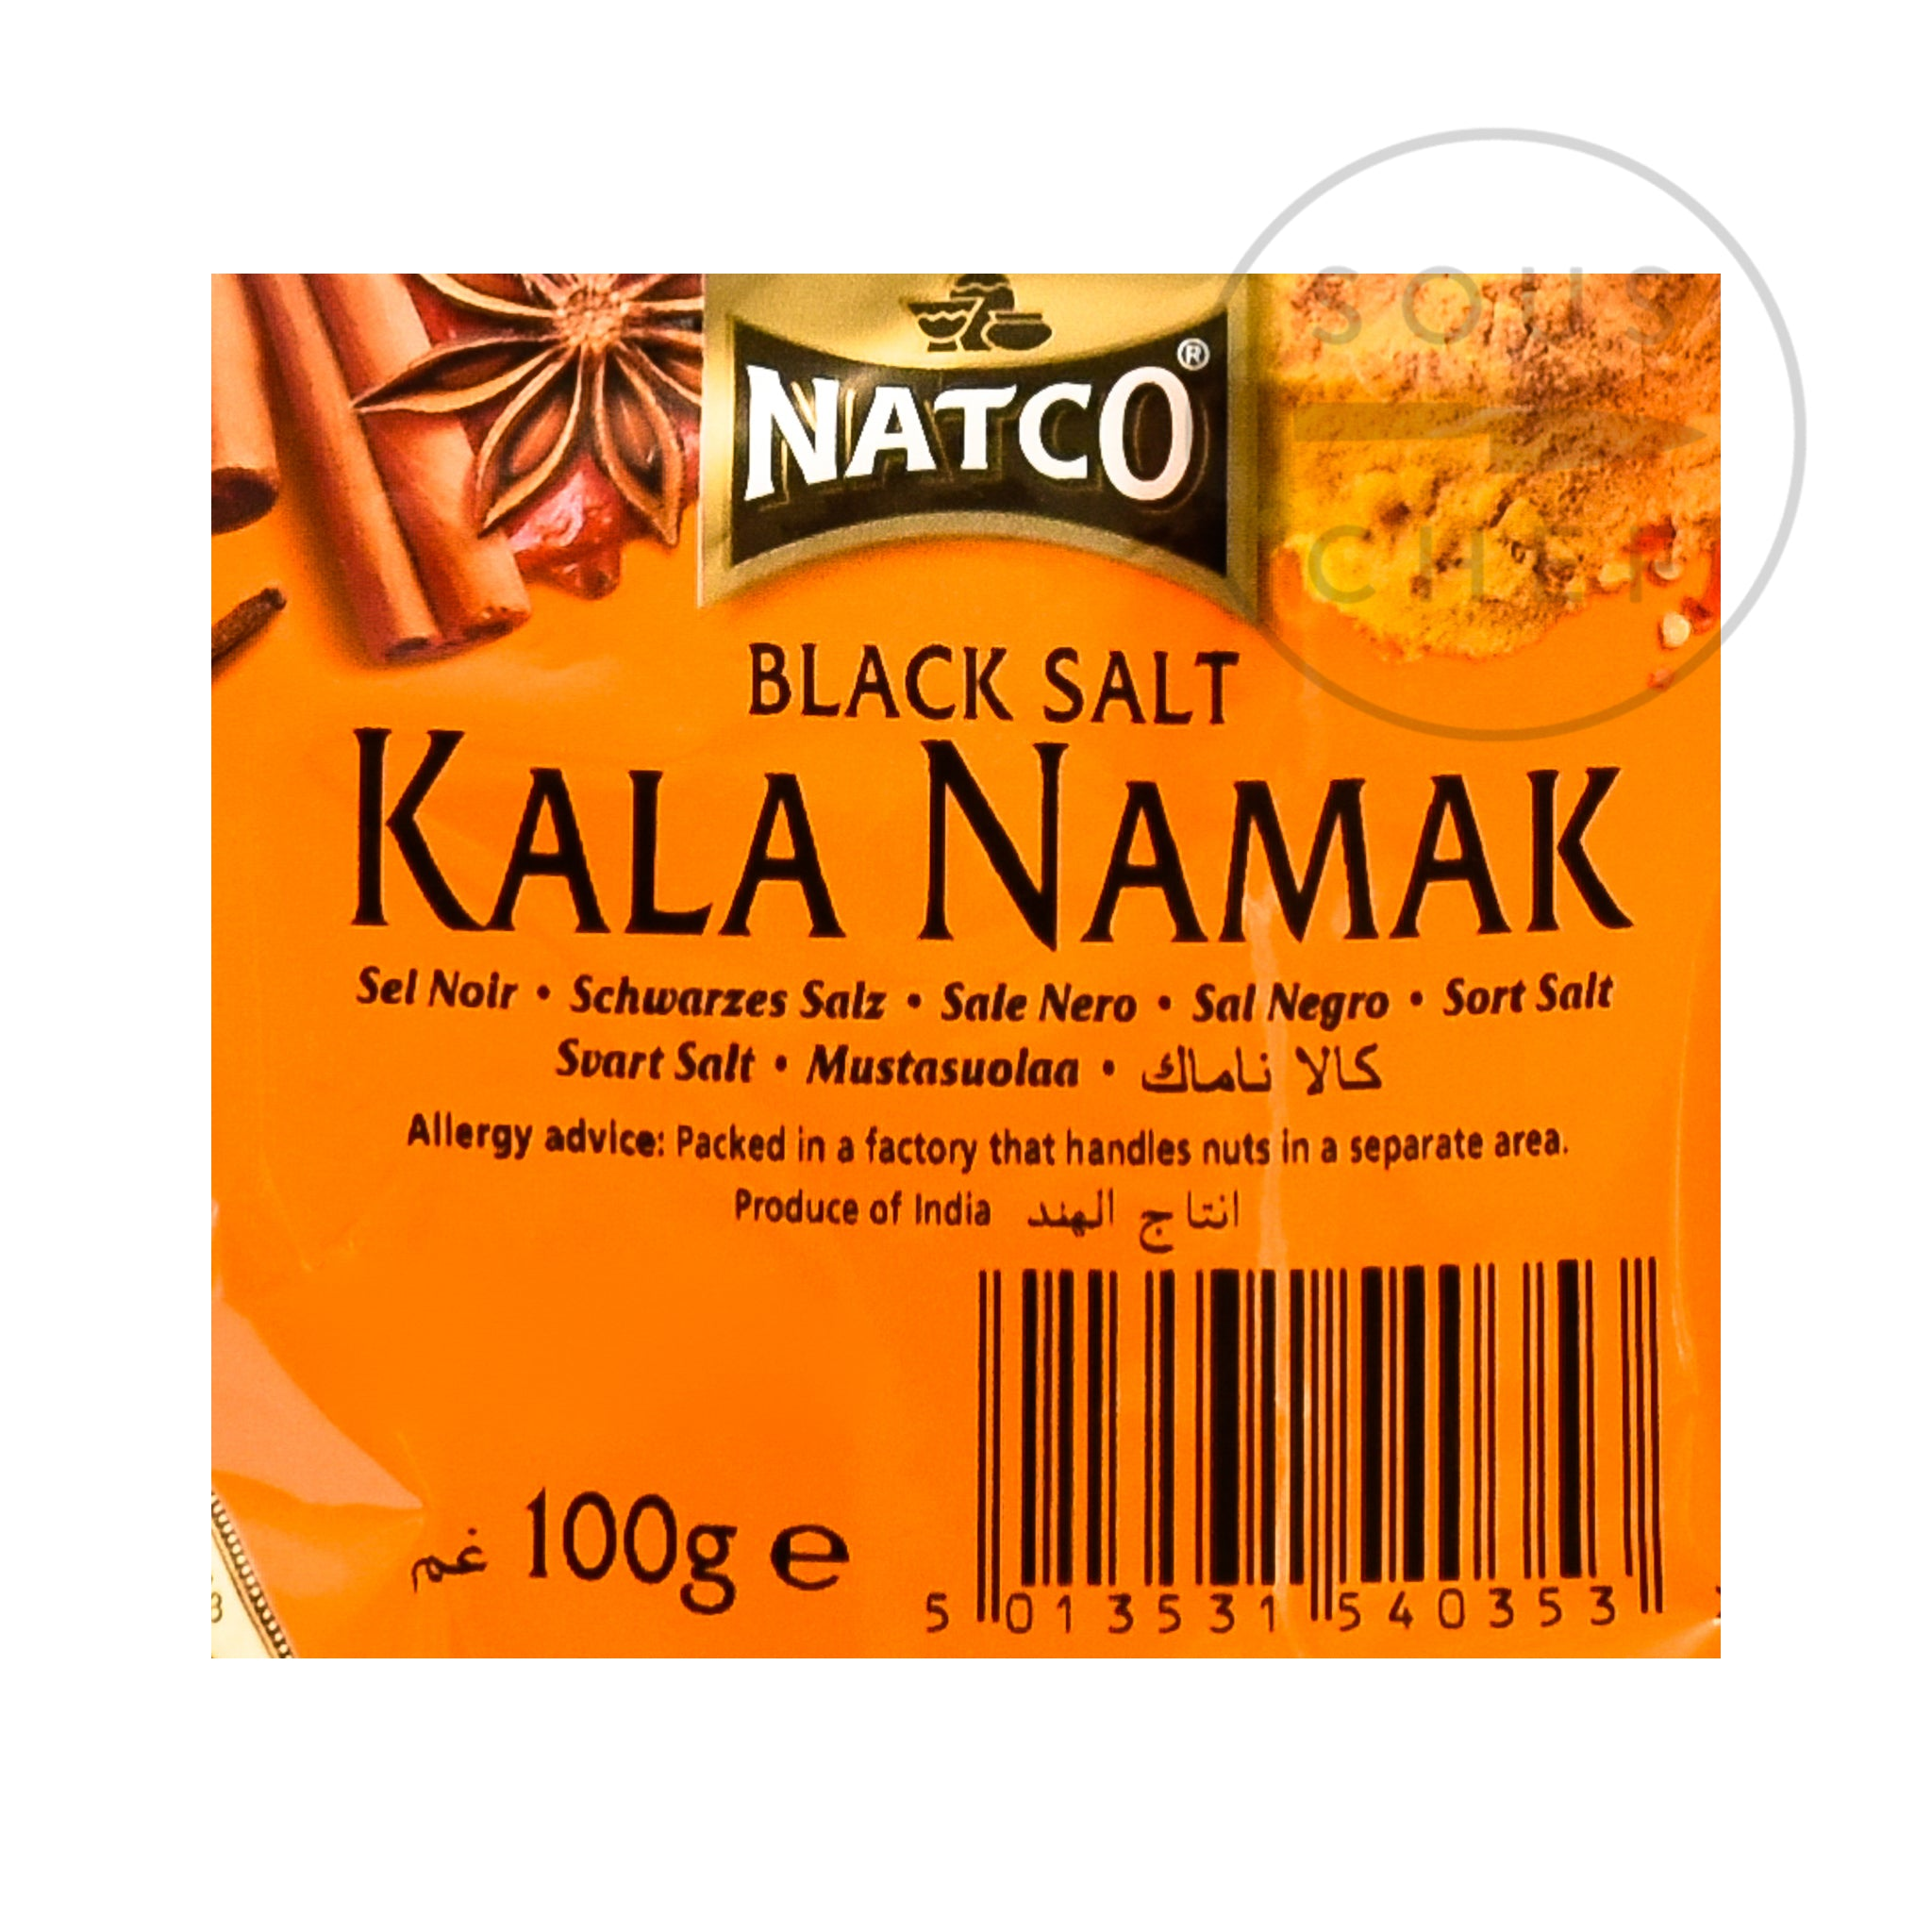 Kala Namak - Indian Black Salt 100g